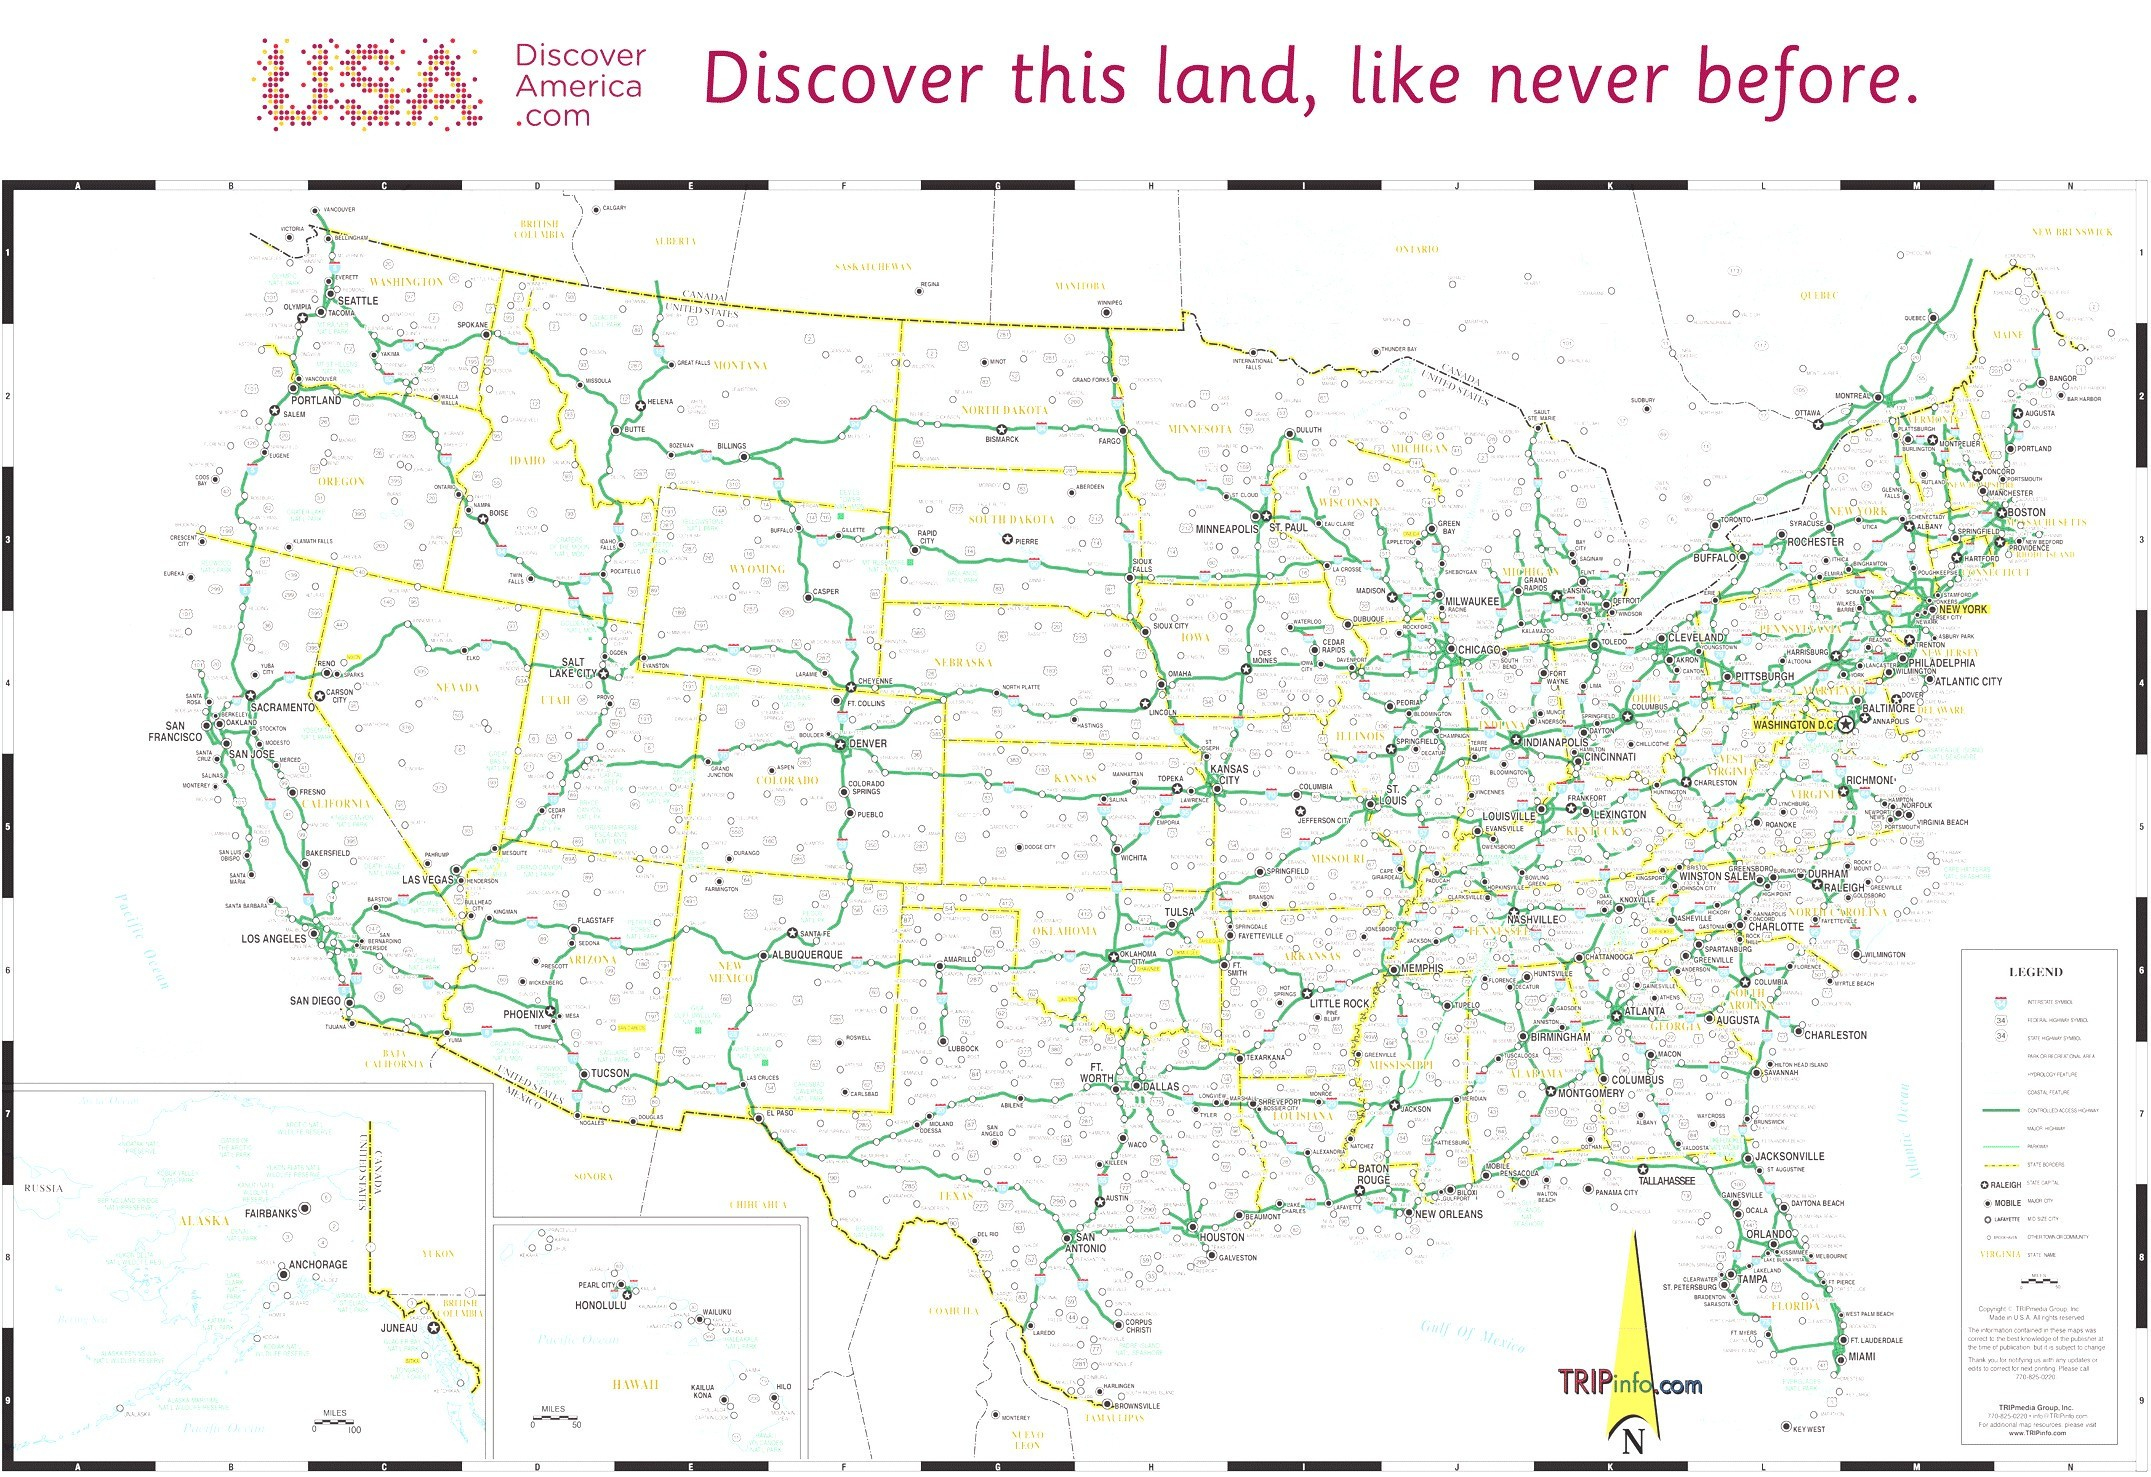 Free Printable Us Highway Map Usa Road Map Elegant 10 Beautiful Free - Free Printable Road Maps Of The United States